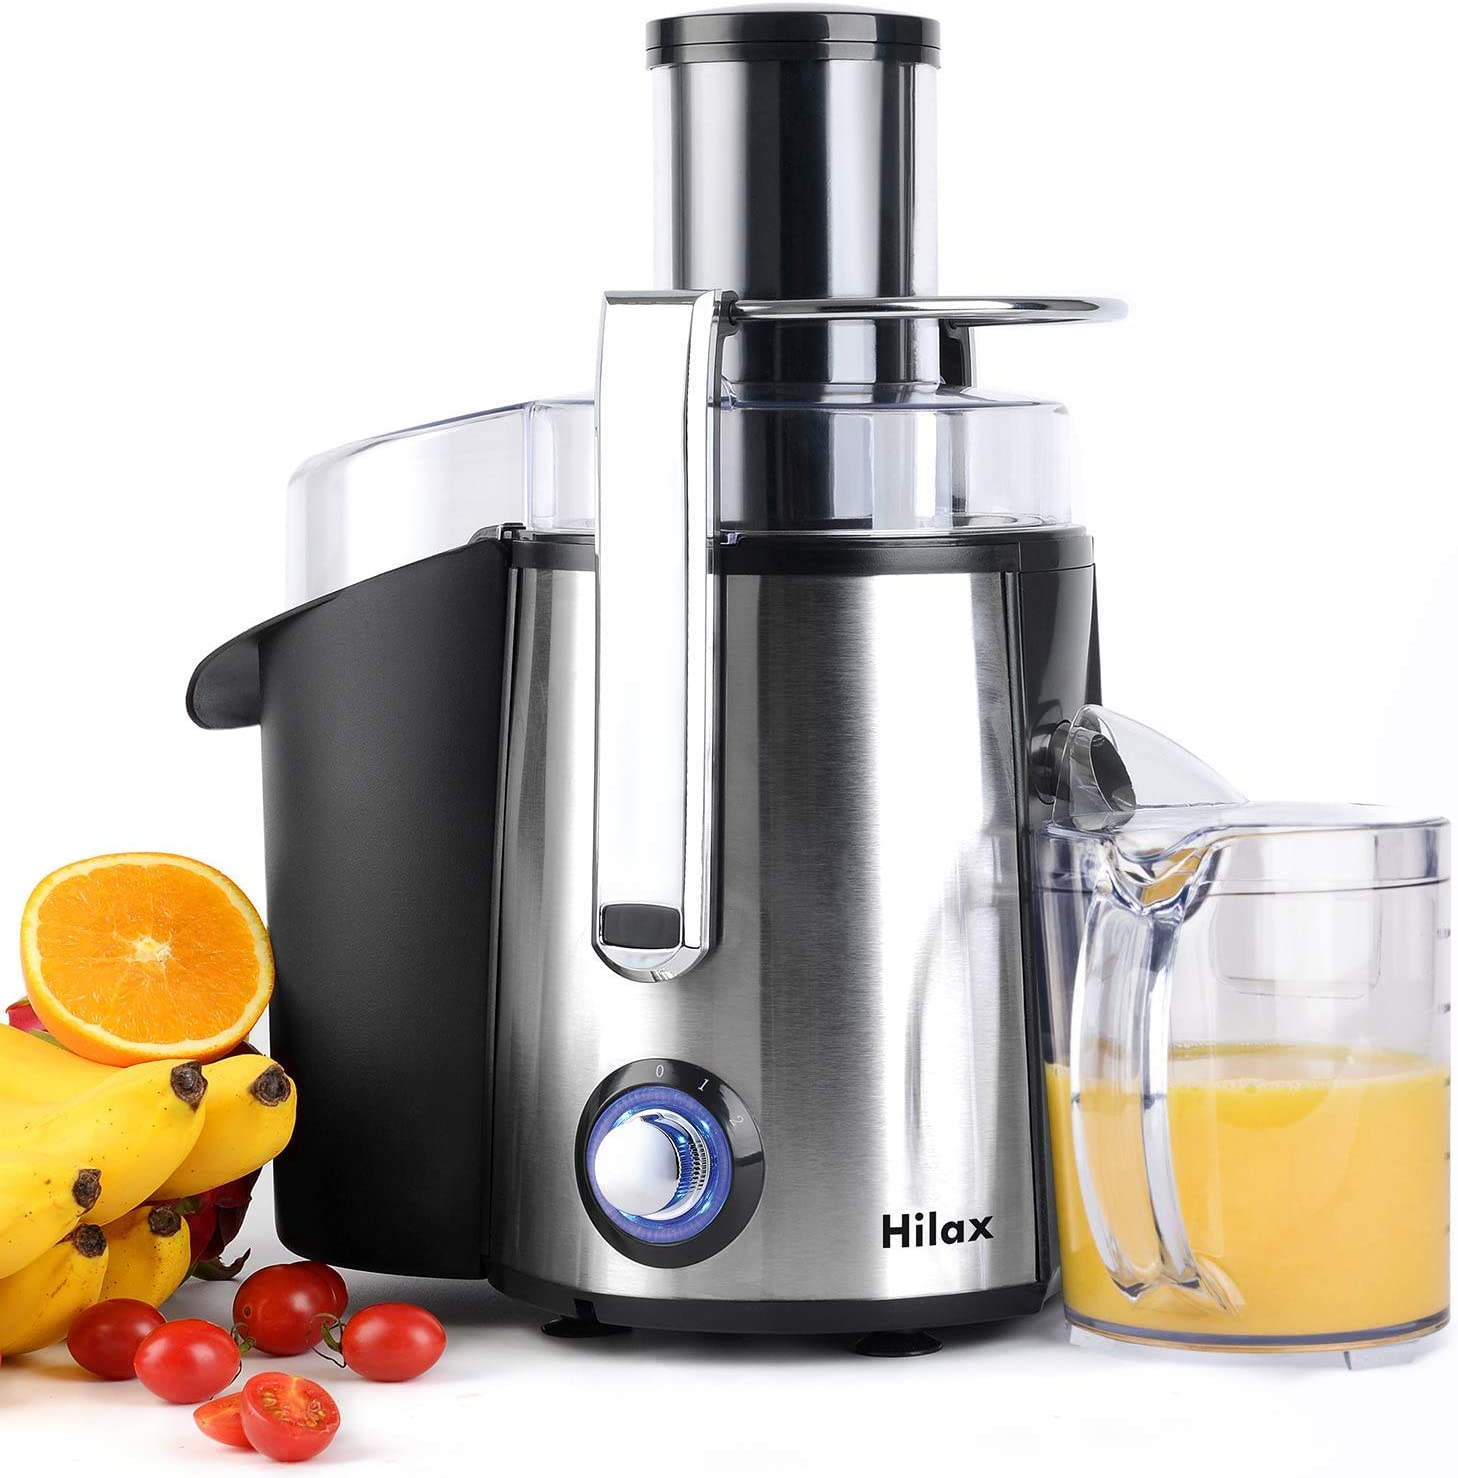 "Juicer Machines, Centrifugal Juicer Extractor, Electric Juicer Maker Fruit and Vegetable, Anti-slip juicers easy to clean, 3"" Feed Chute, Stainless Steel, BPA Free(Silver)"